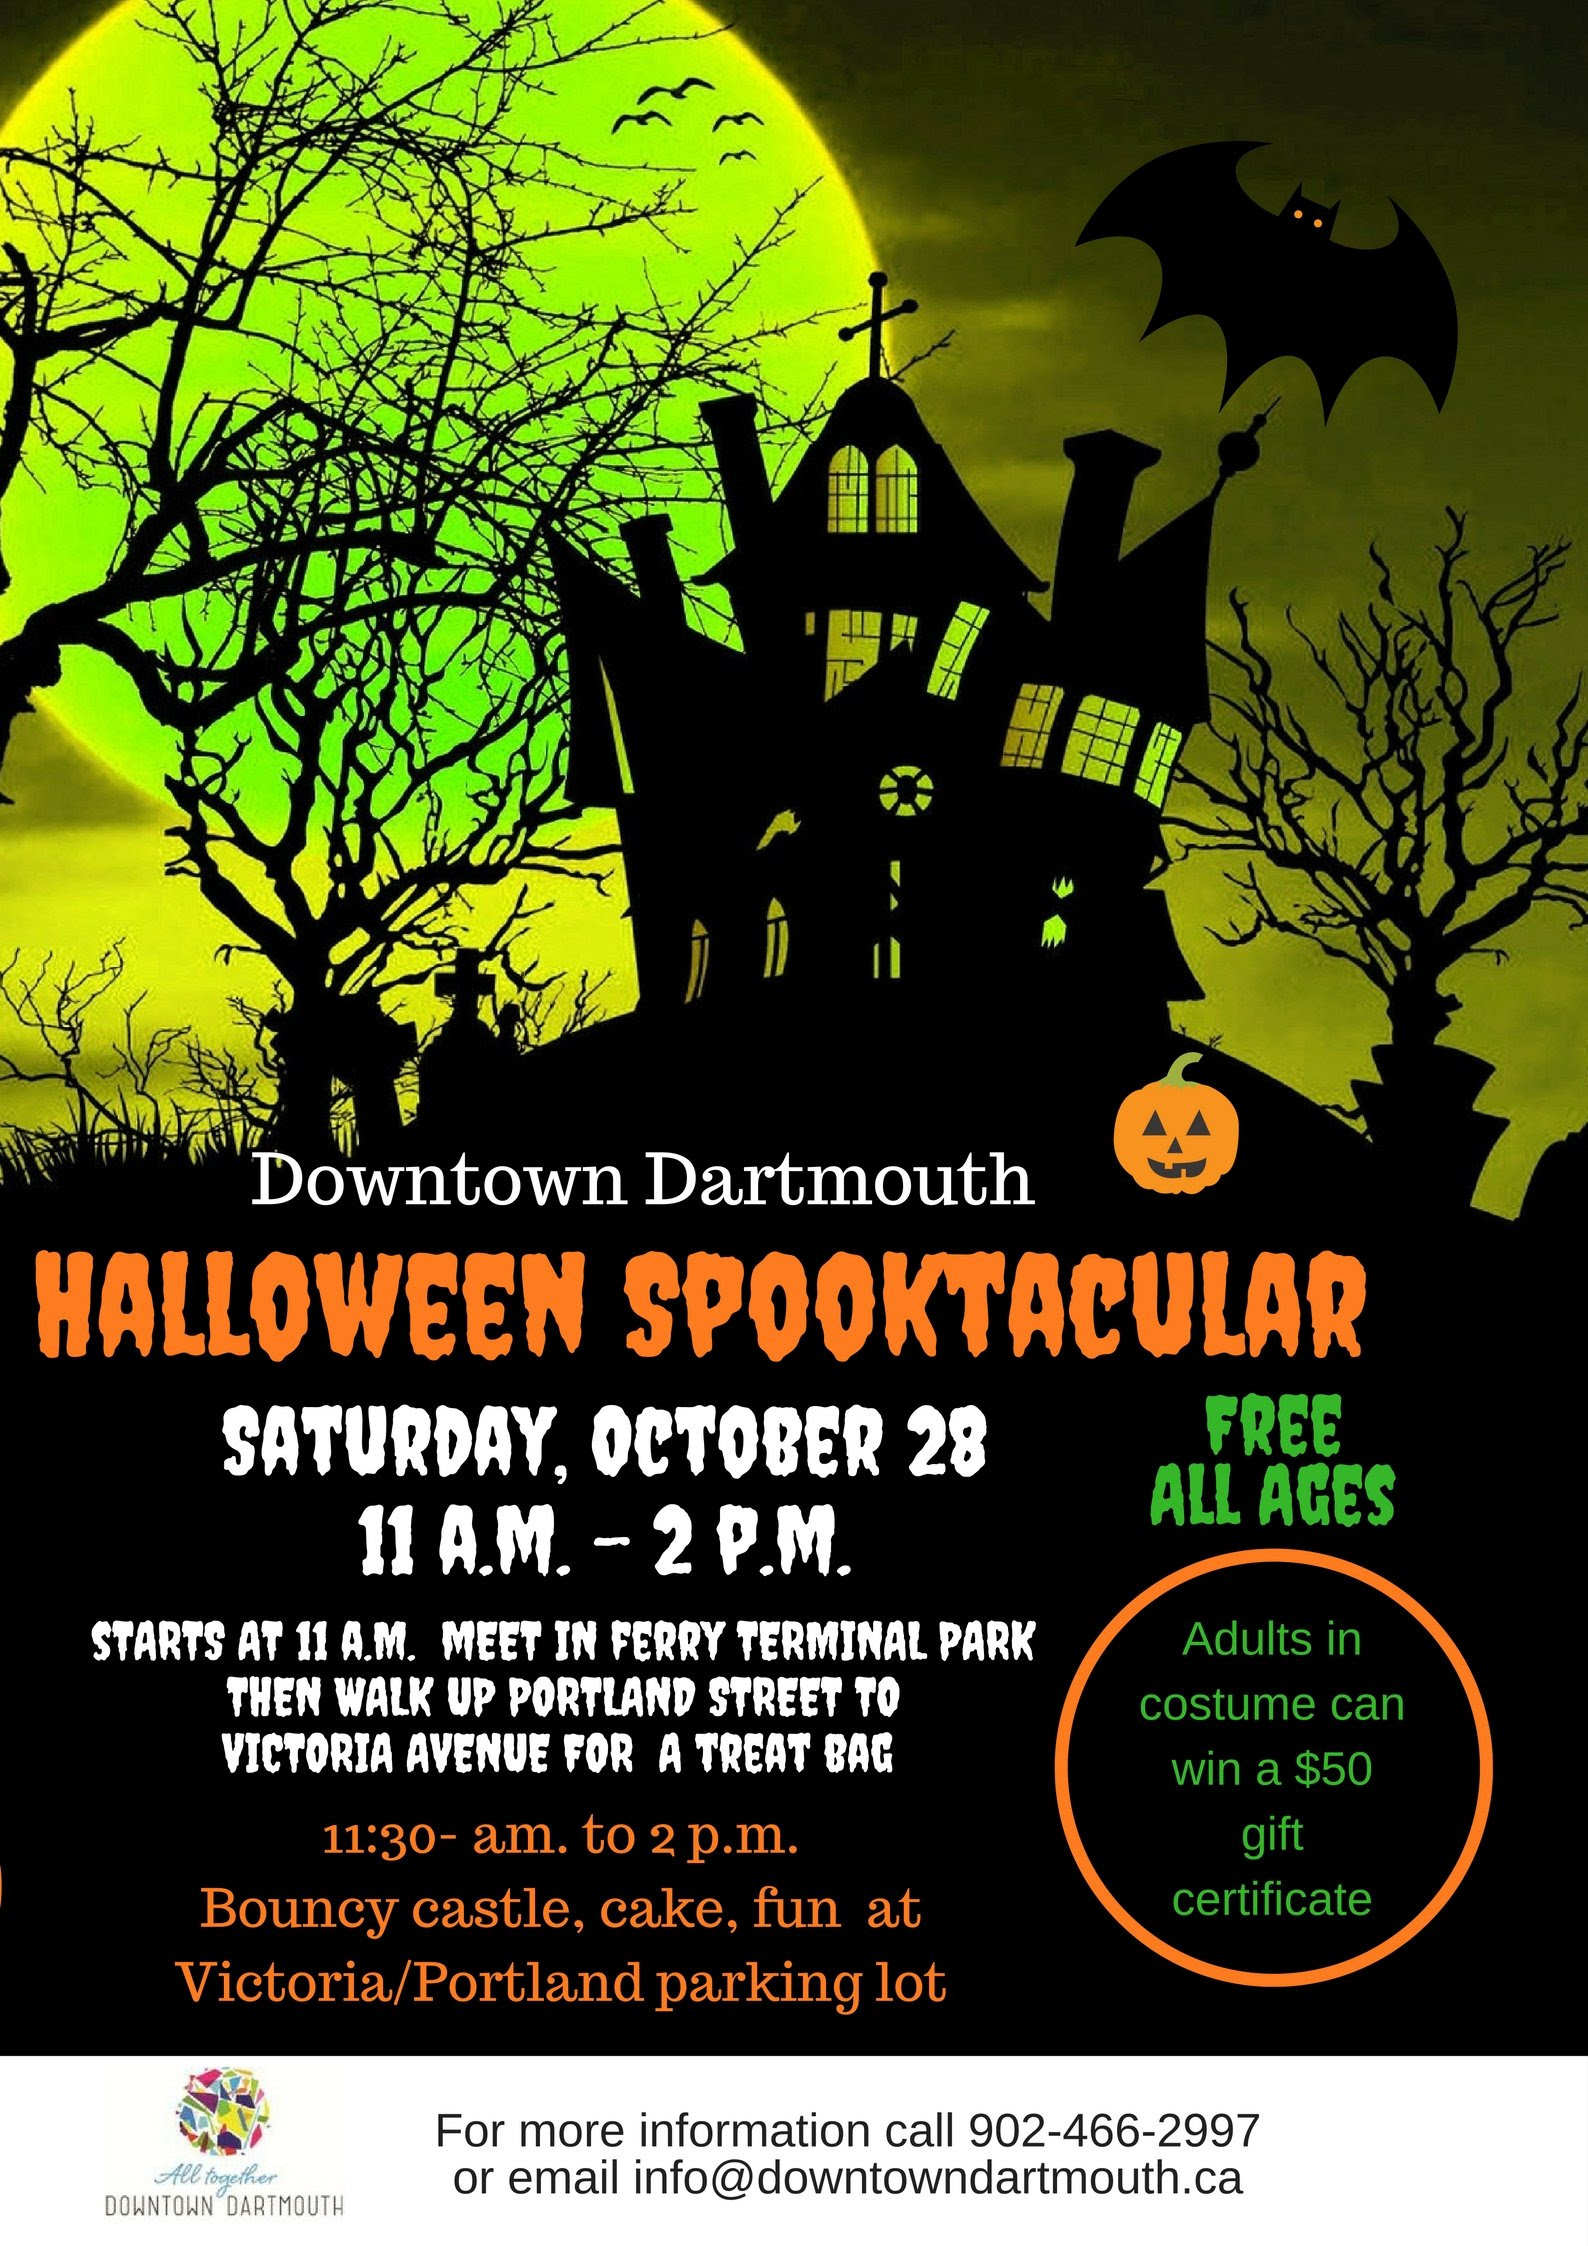 IMage from:http://downtowndartmouth.ca/